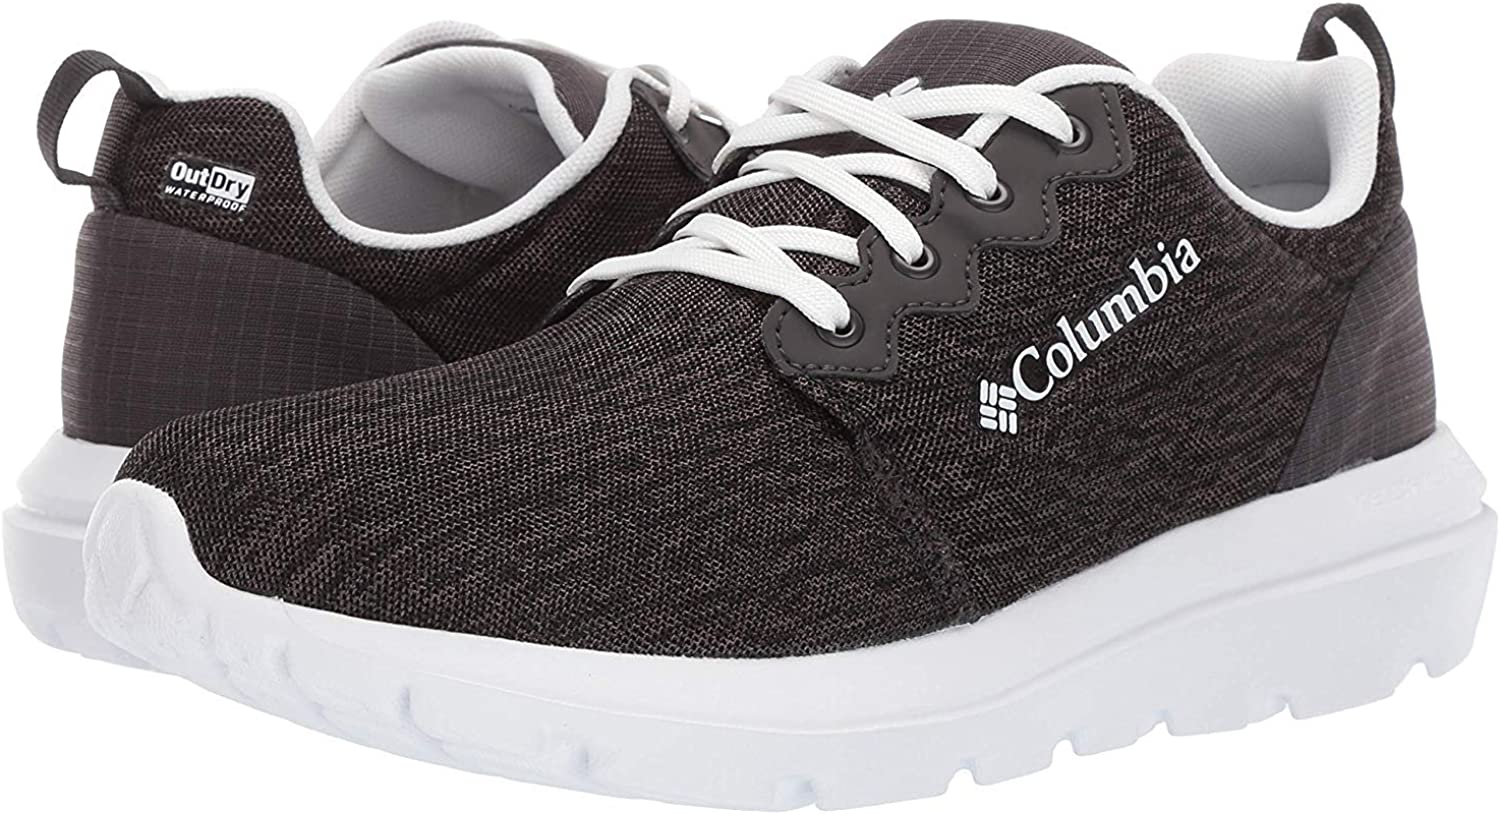 Chaussures de Cross Femme Columbia Backpedal Outdry